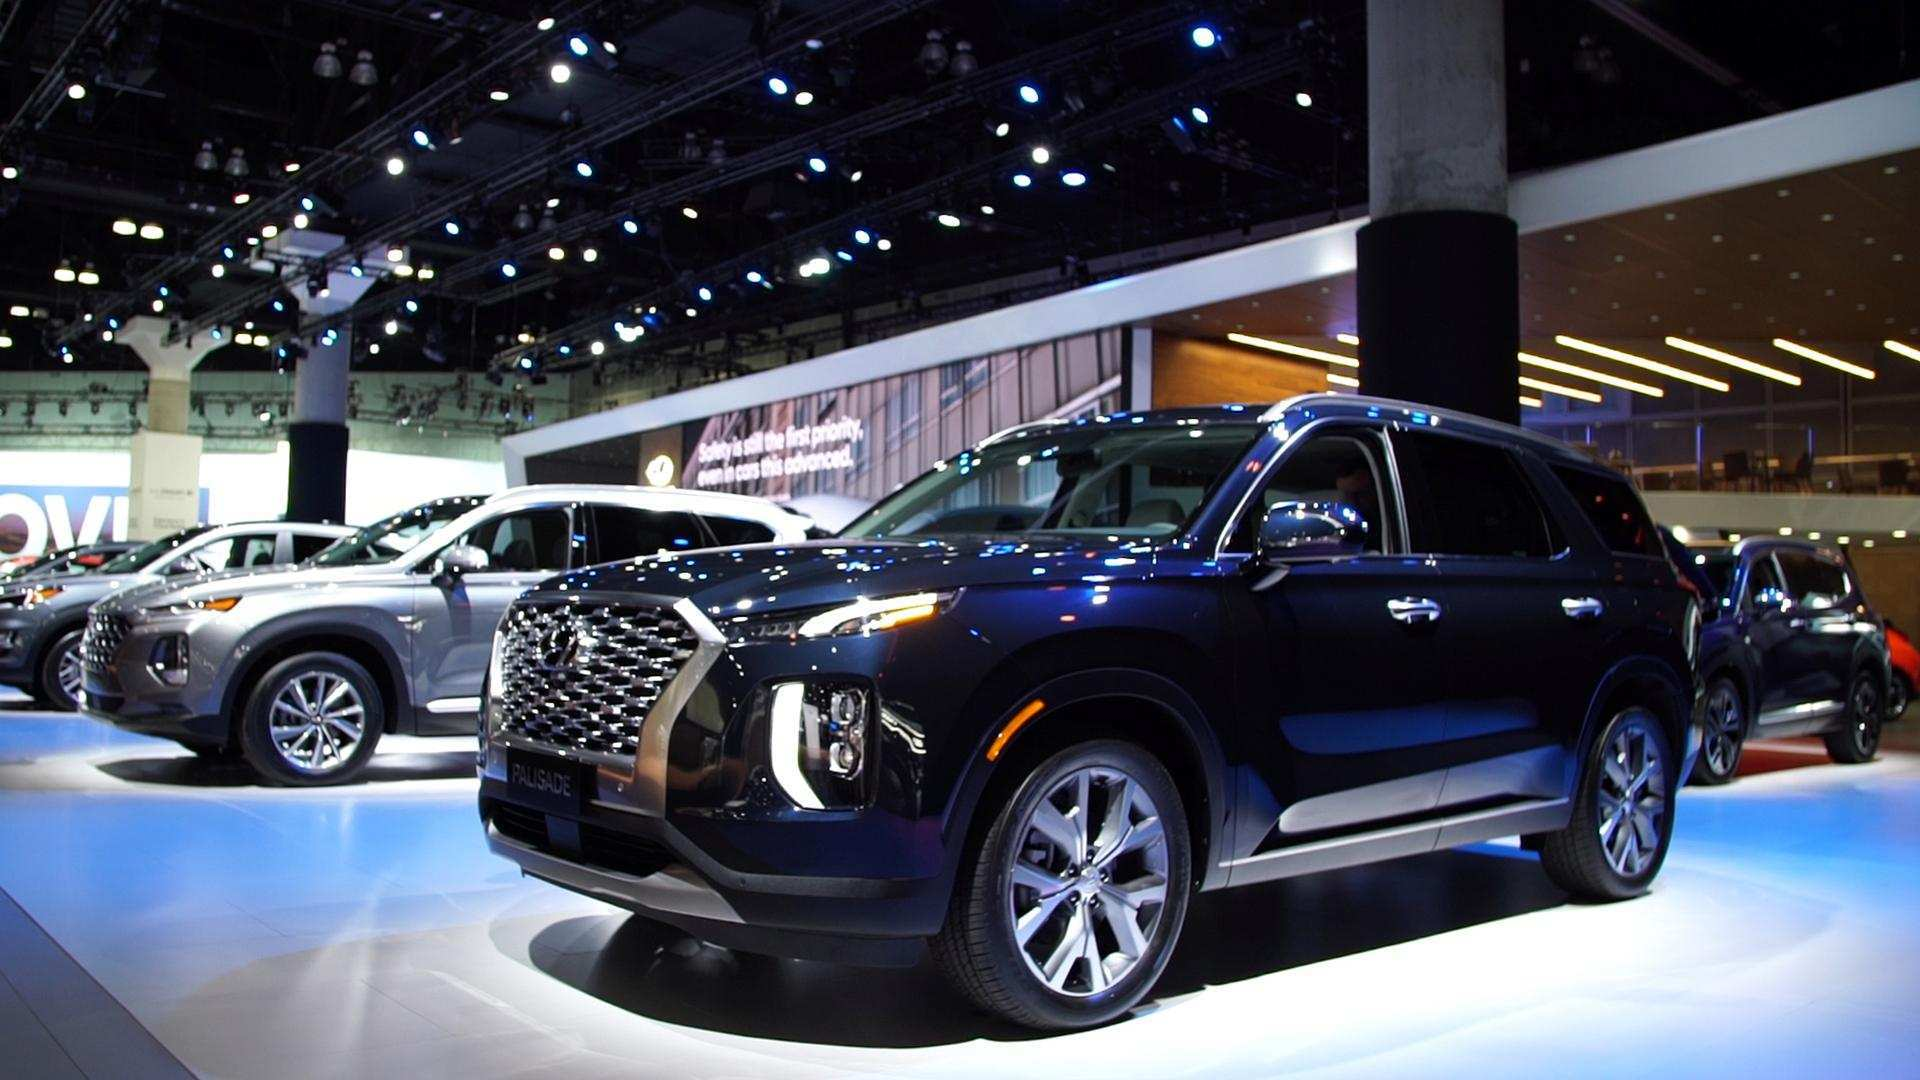 62 Concept Of Hyundai Palisade 2020 Price In Pakistan Research New For Hyundai Palisade 2020 Price In Pakistan Car Review Car Review